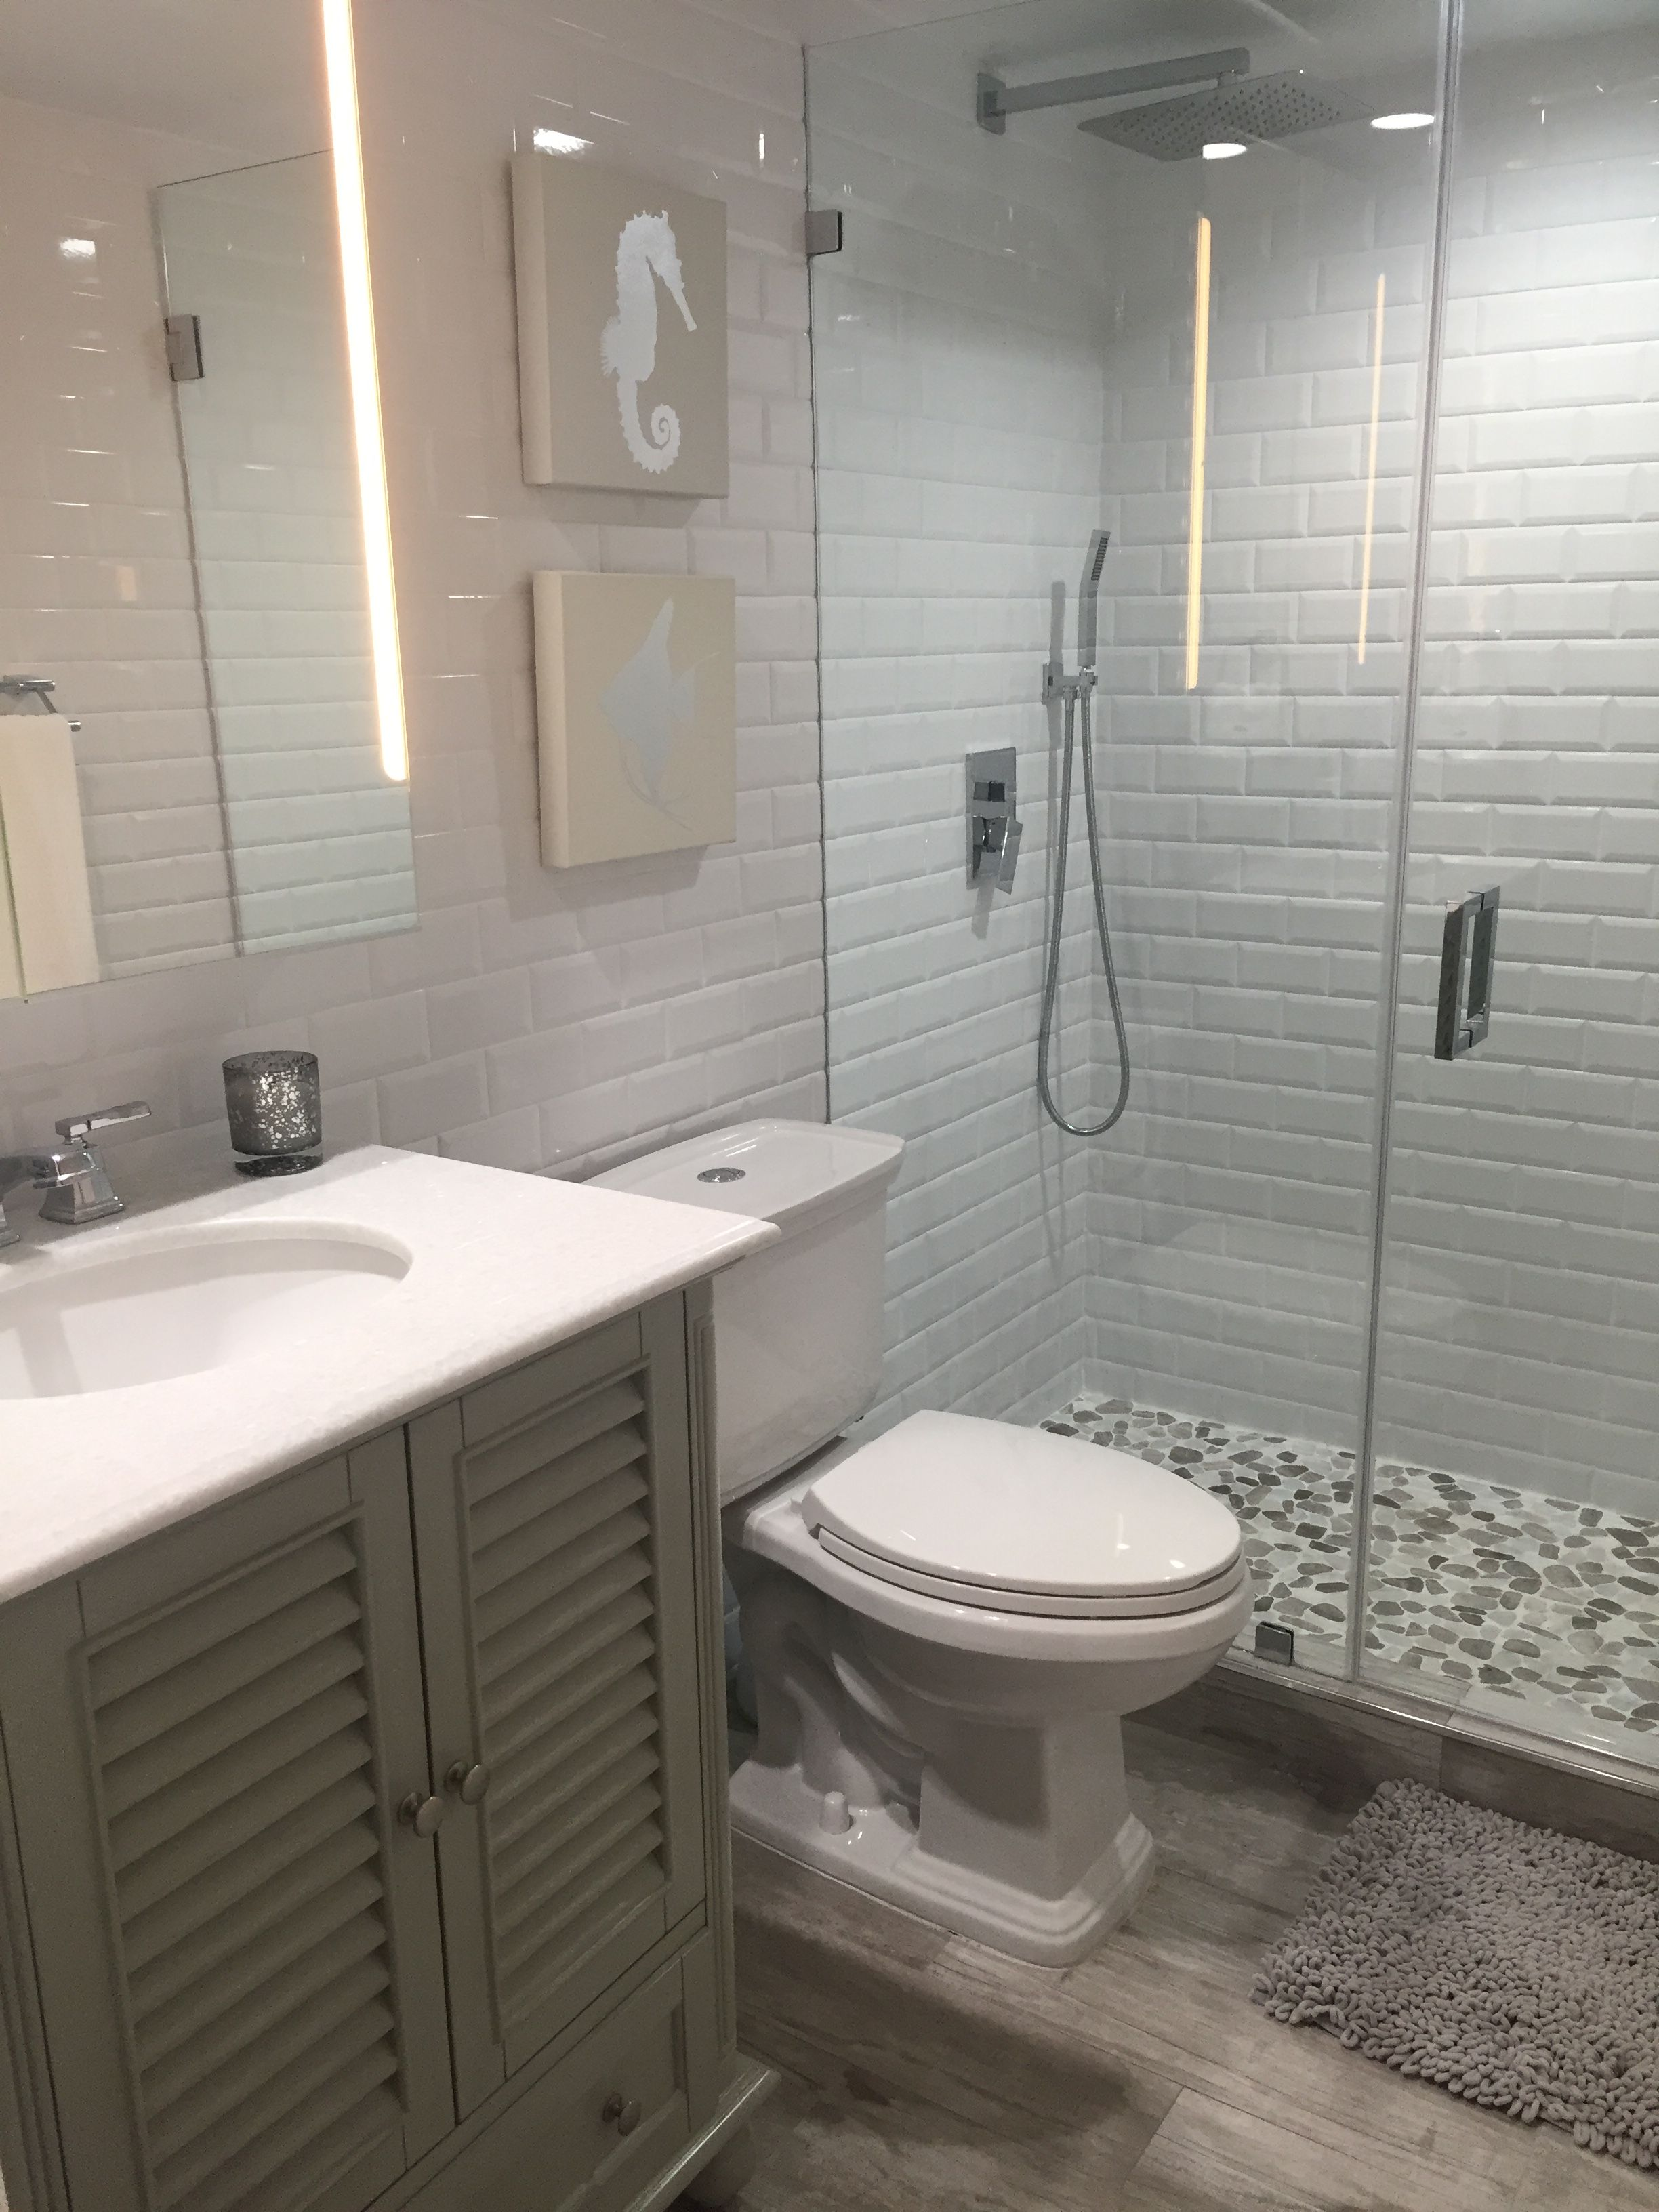 Fort Wayne bathroom remodel contractors, Fort Wayne bathroom remodeling, Fort Wayne bathroom remodeling quote.